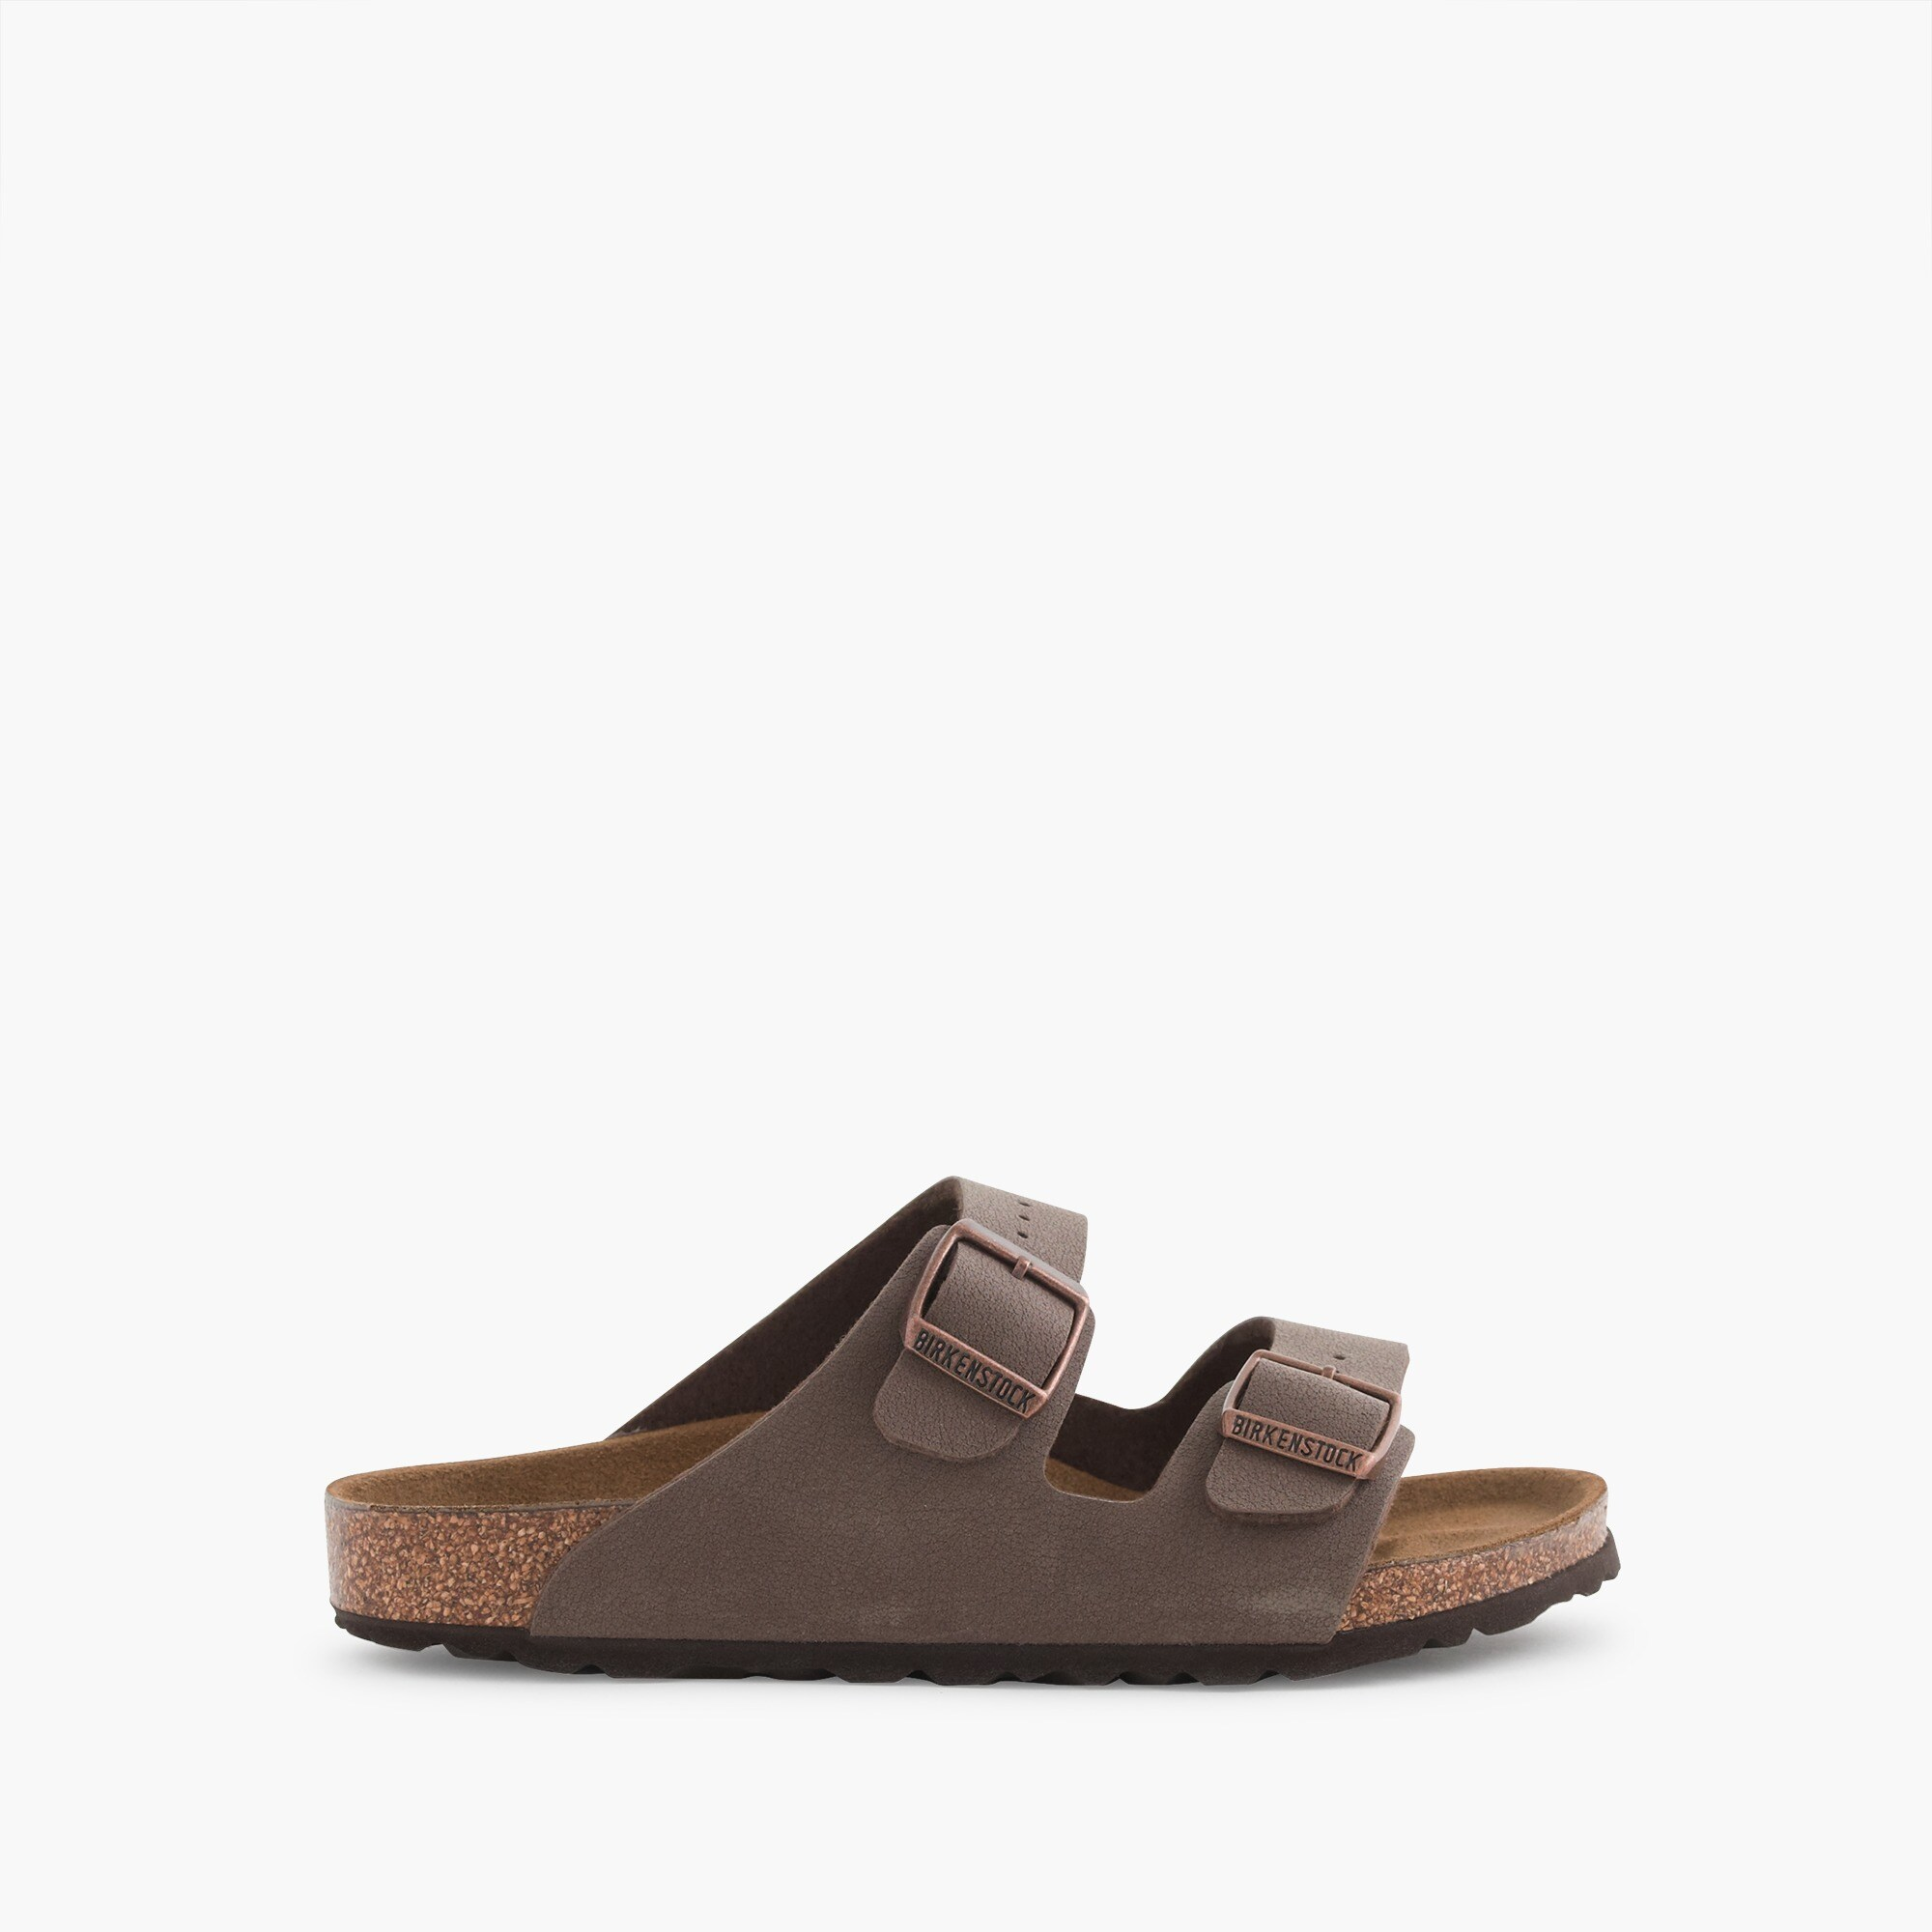 Kids' Birkenstock® Arizona sandals